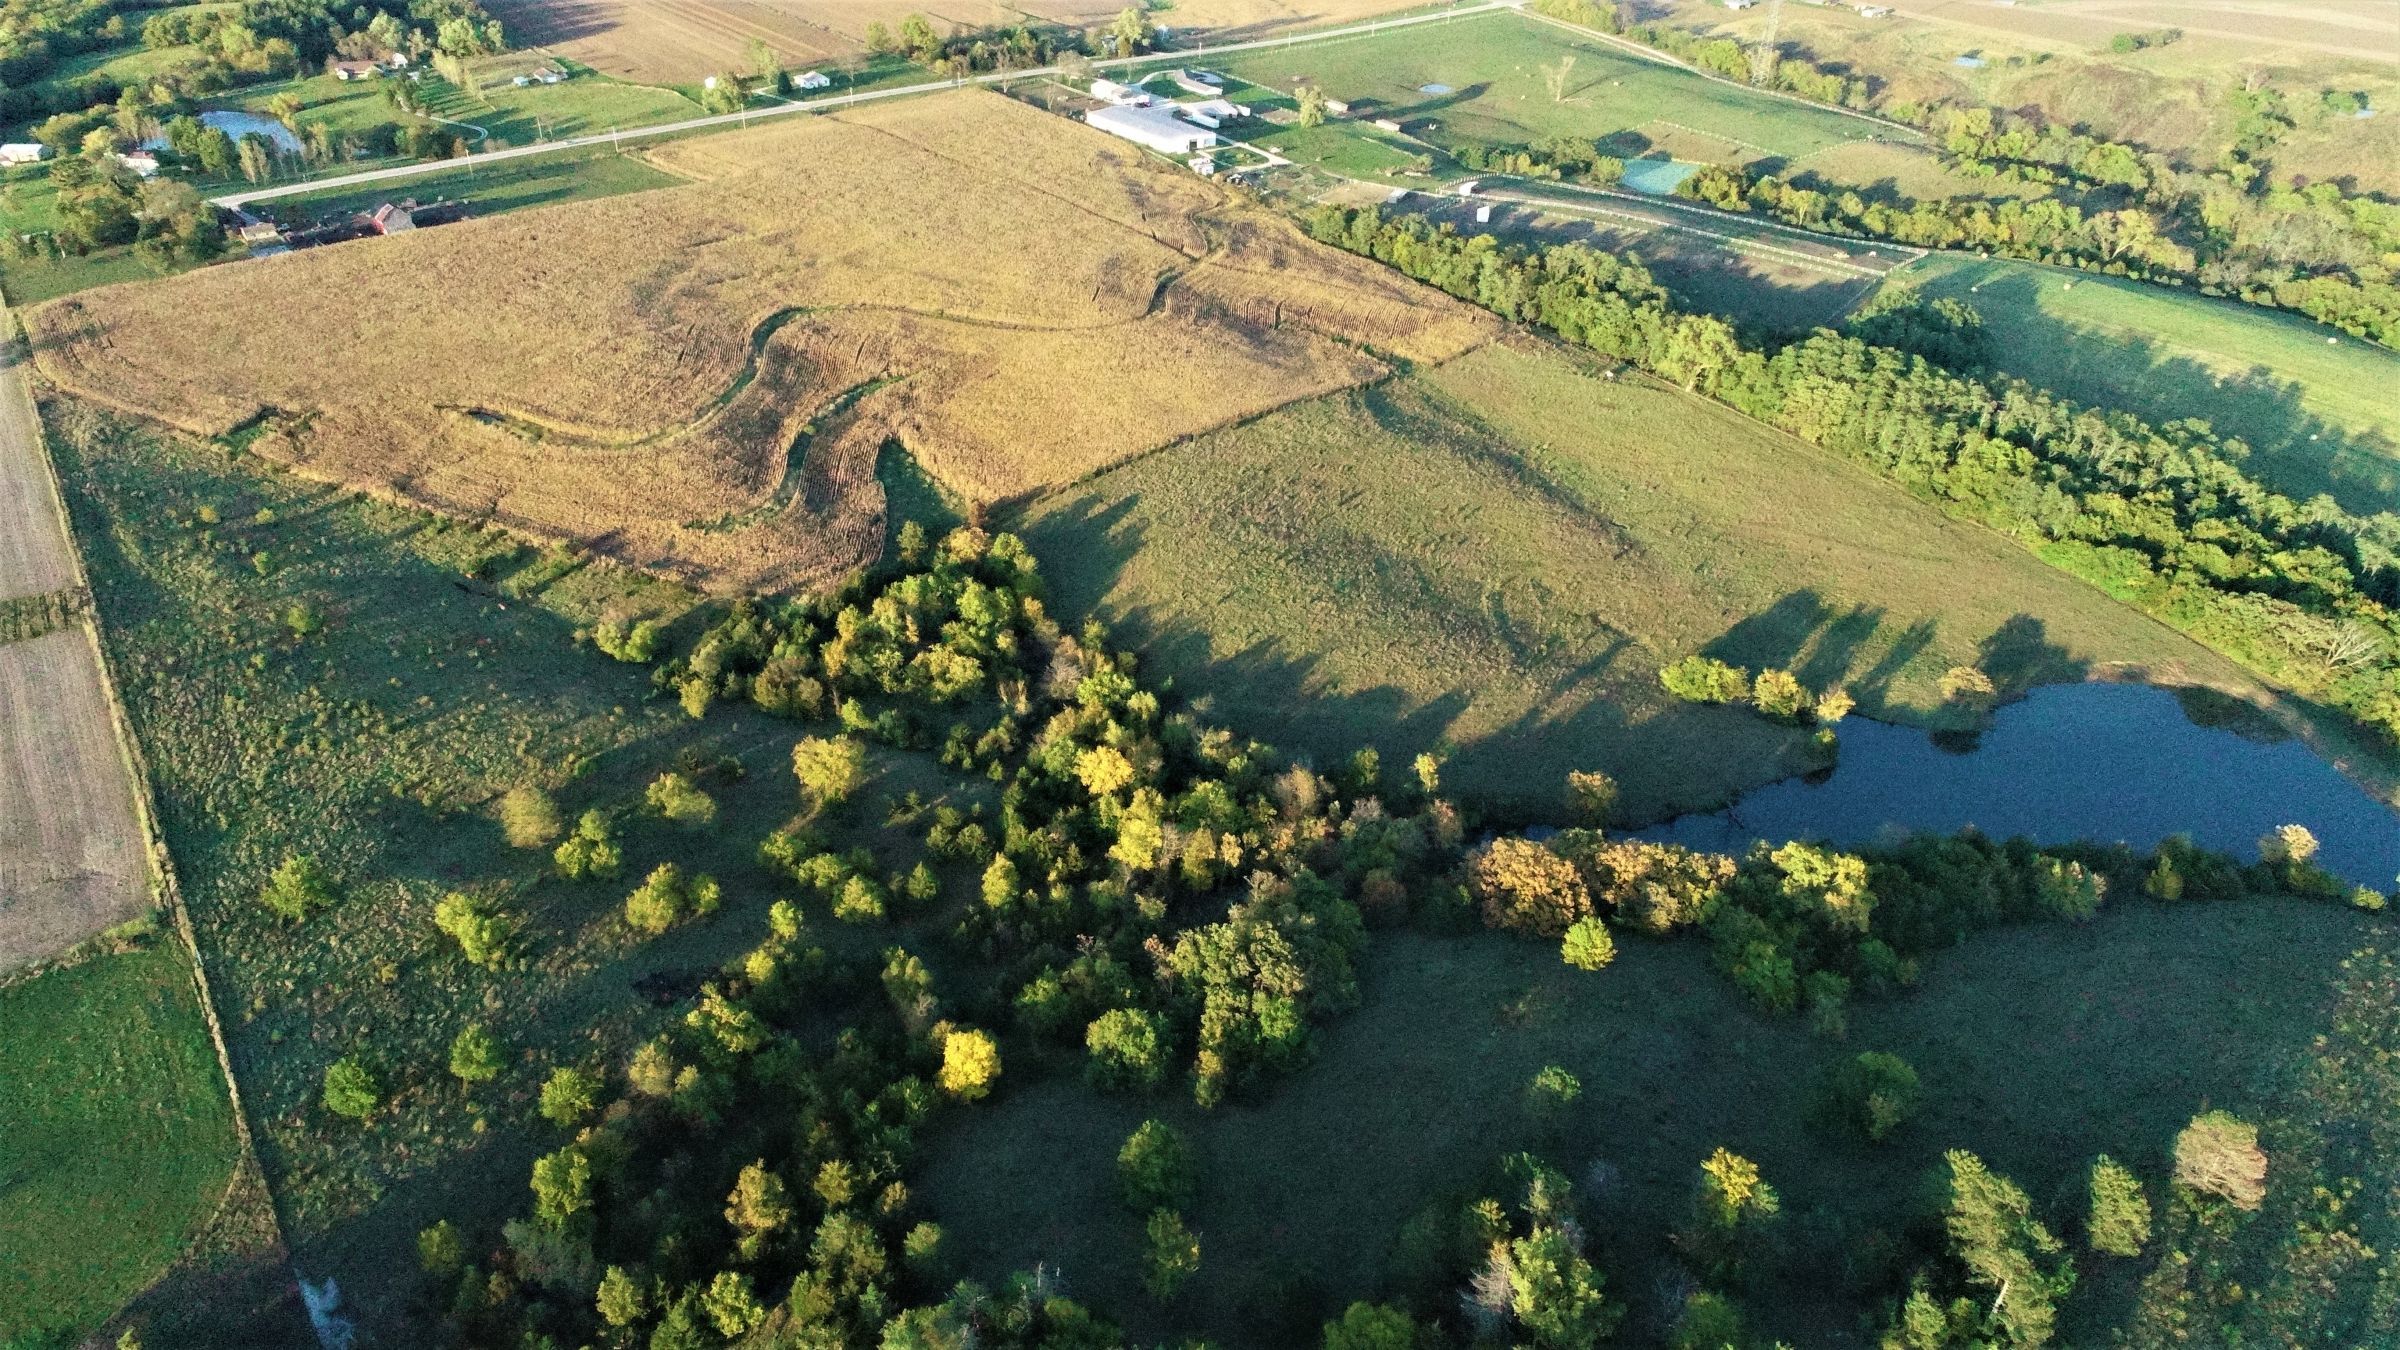 madison-county-iowa-76-acres-listing-number-15209-2-2020-10-12-175954.jpg